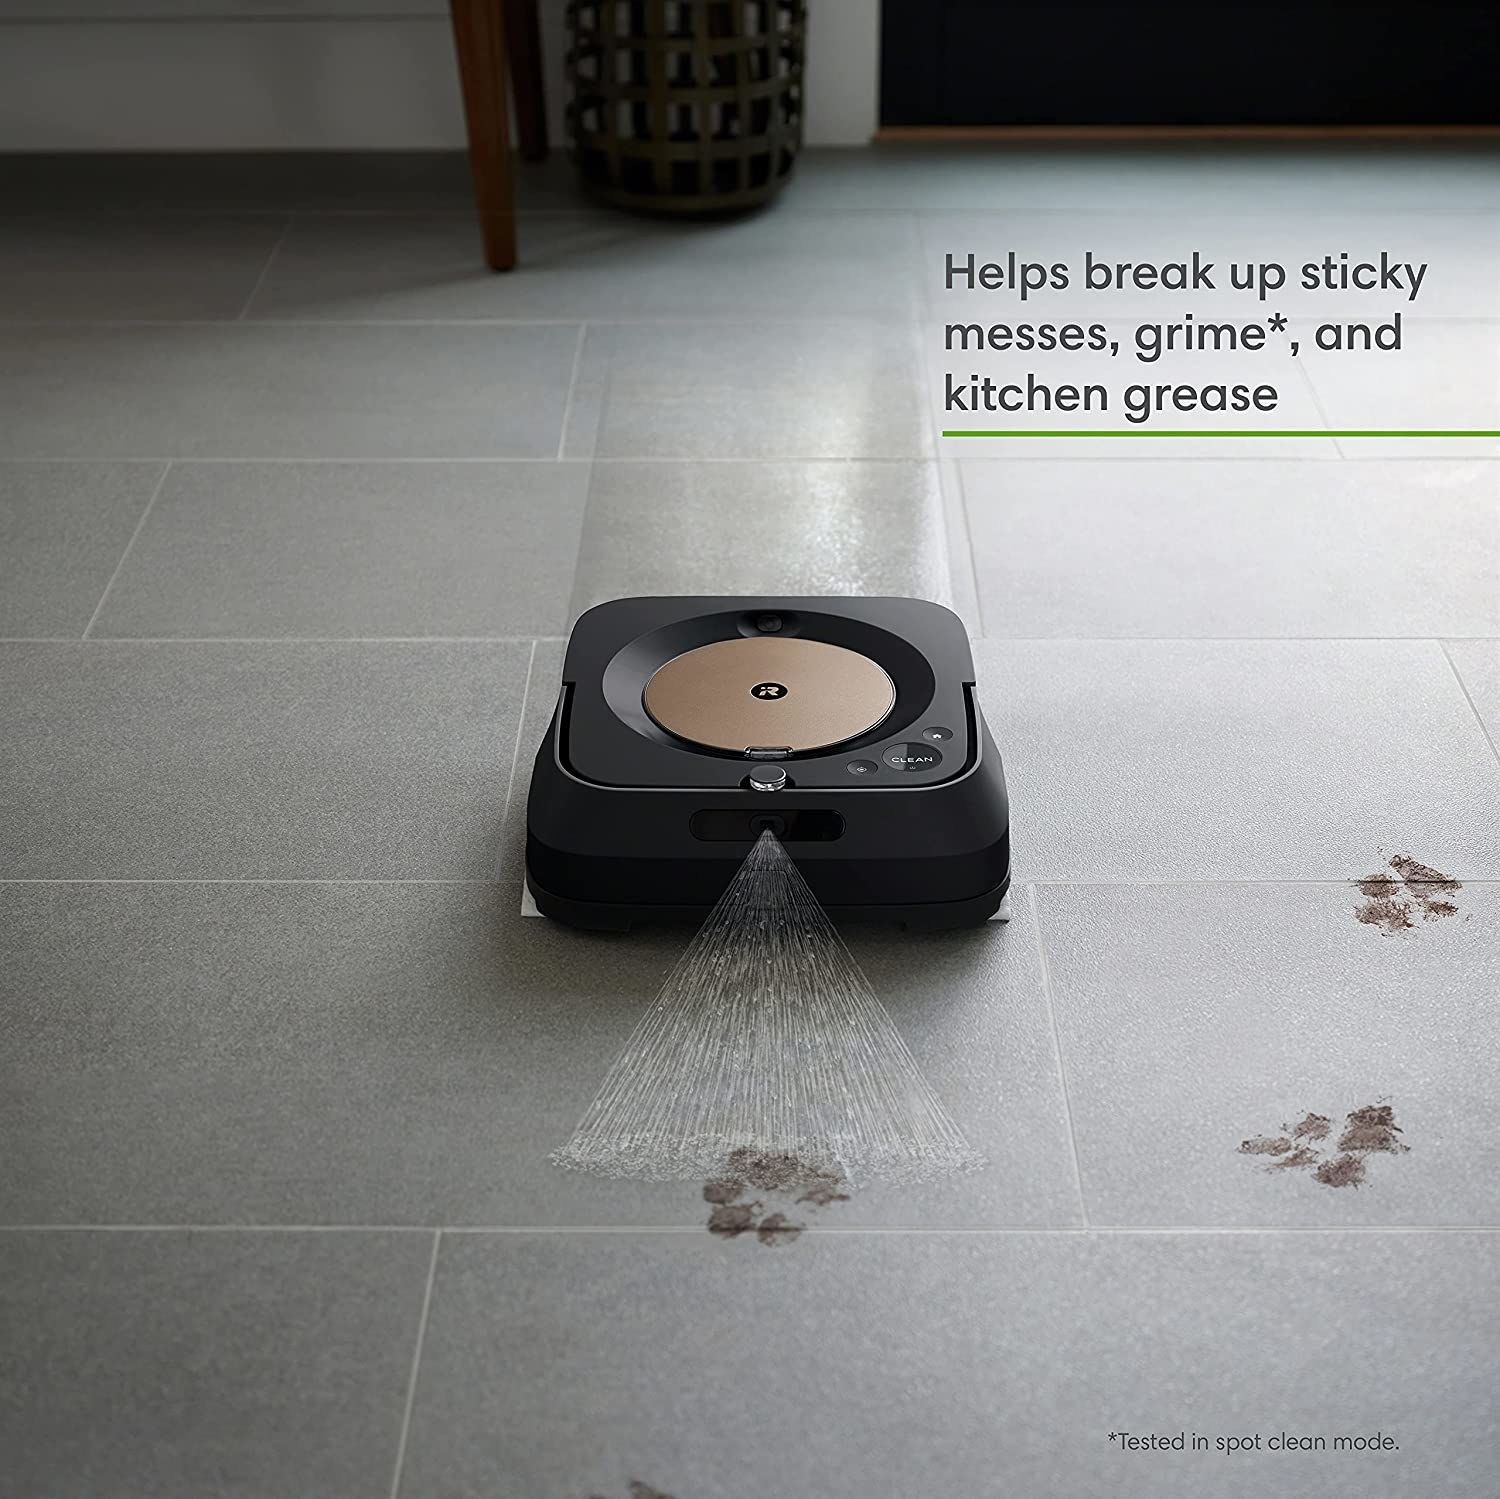 The black mop spraying cleaner on a muddy paw print